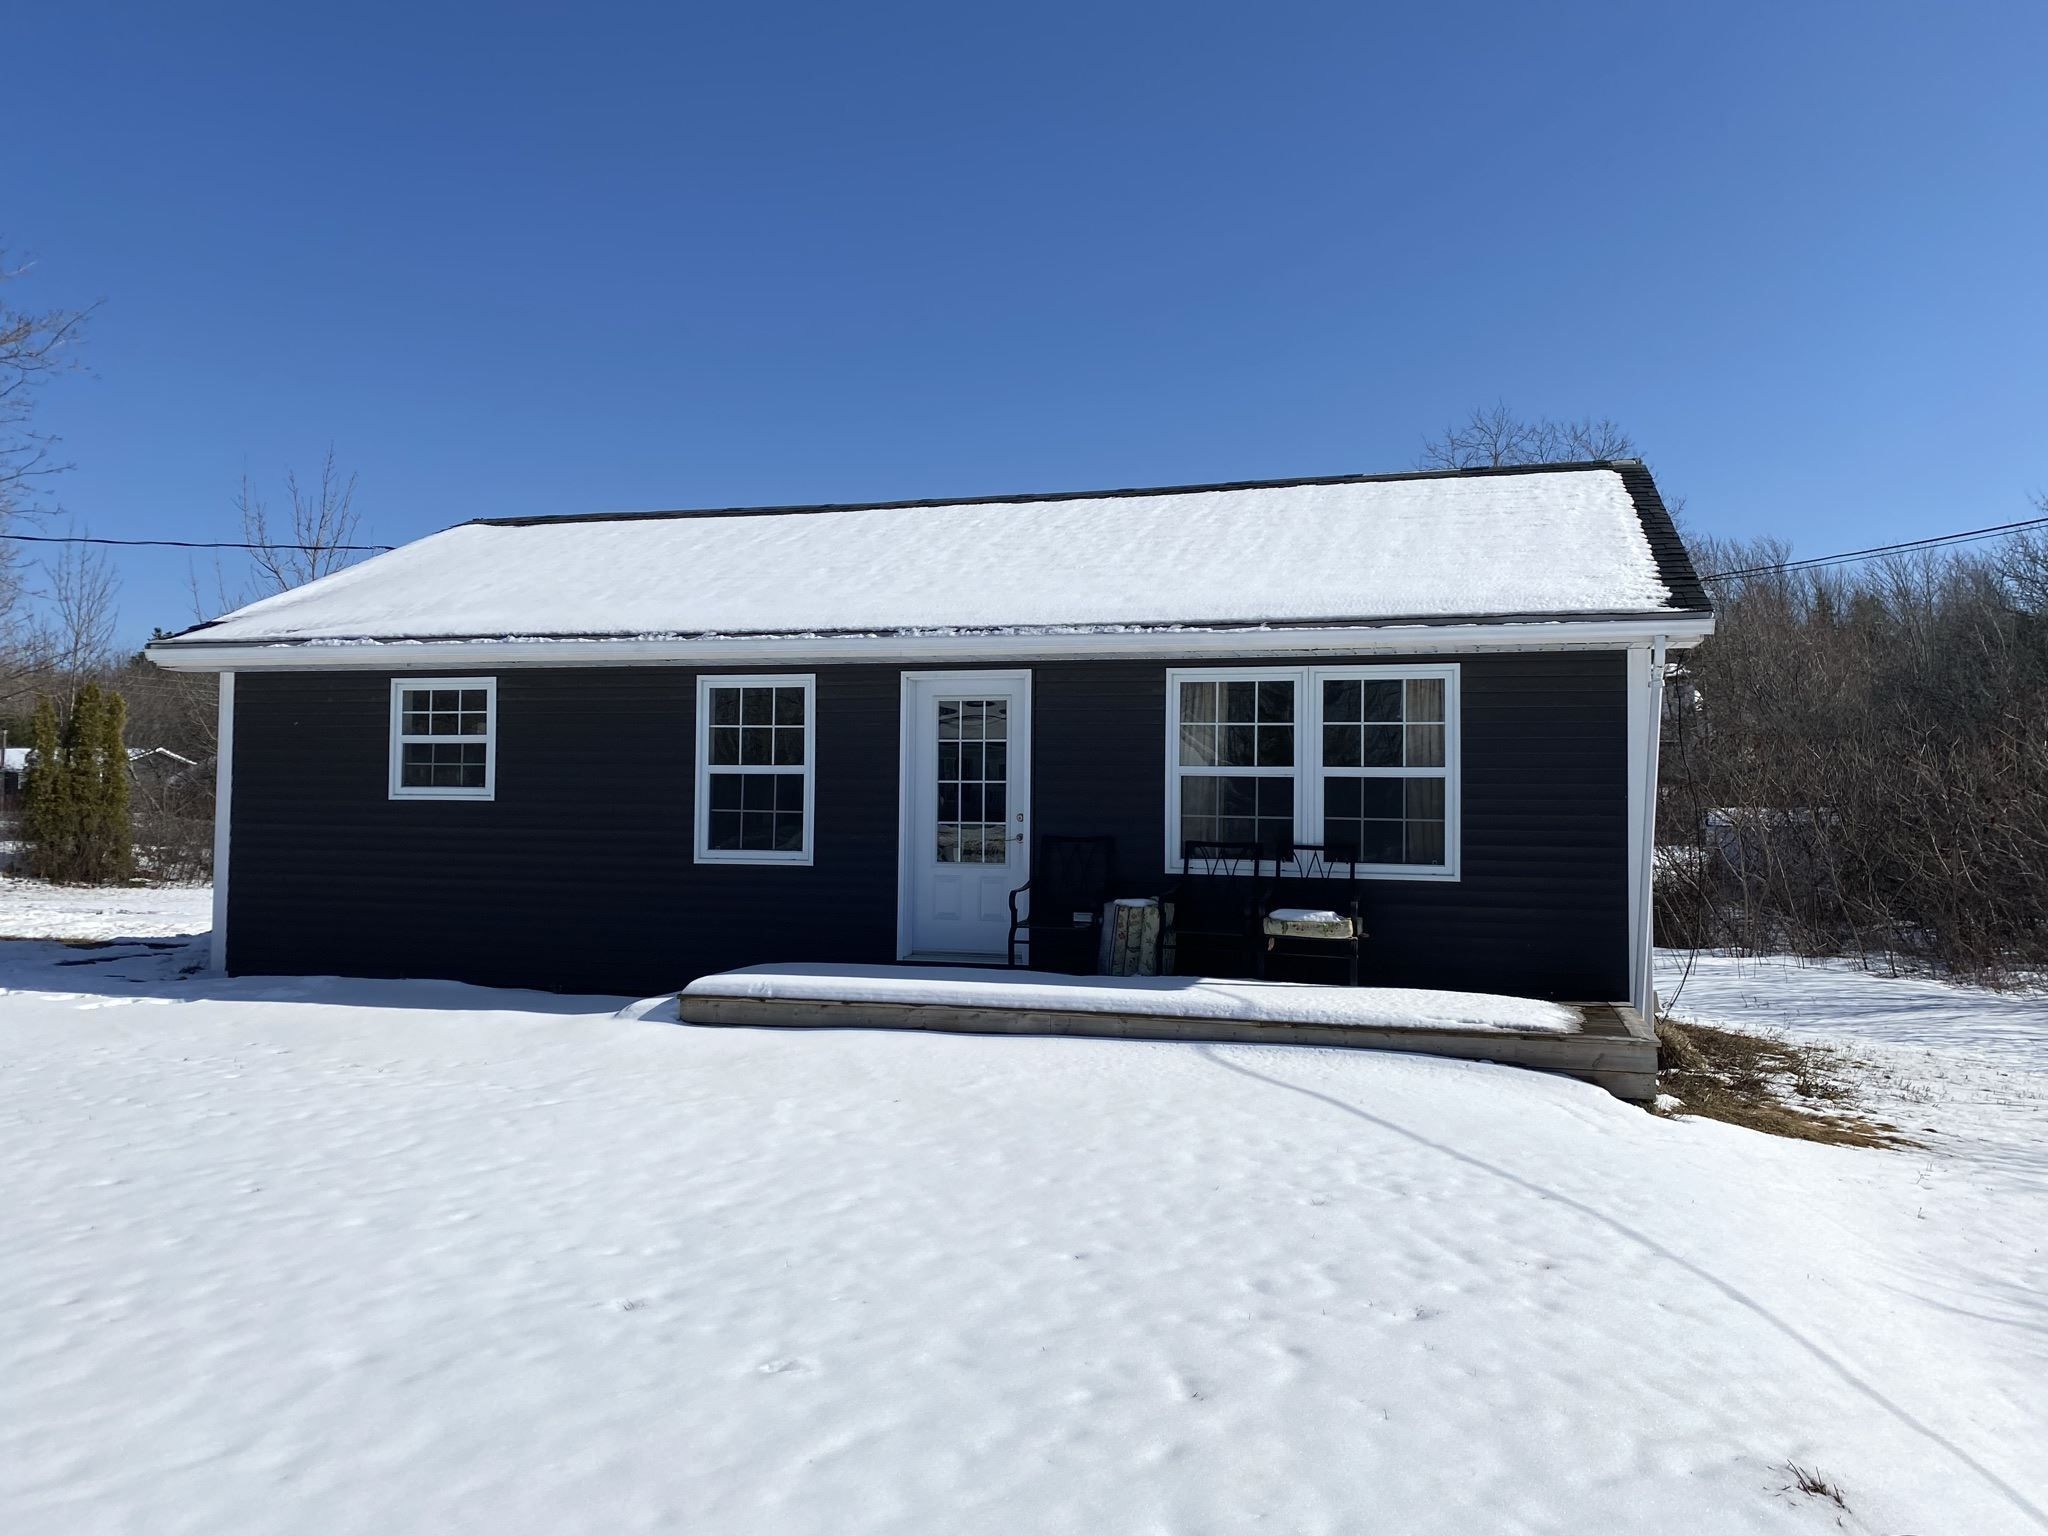 Main Photo: 5624 Prospect Road in New Minas: 404-Kings County Residential for sale (Annapolis Valley)  : MLS®# 202106217